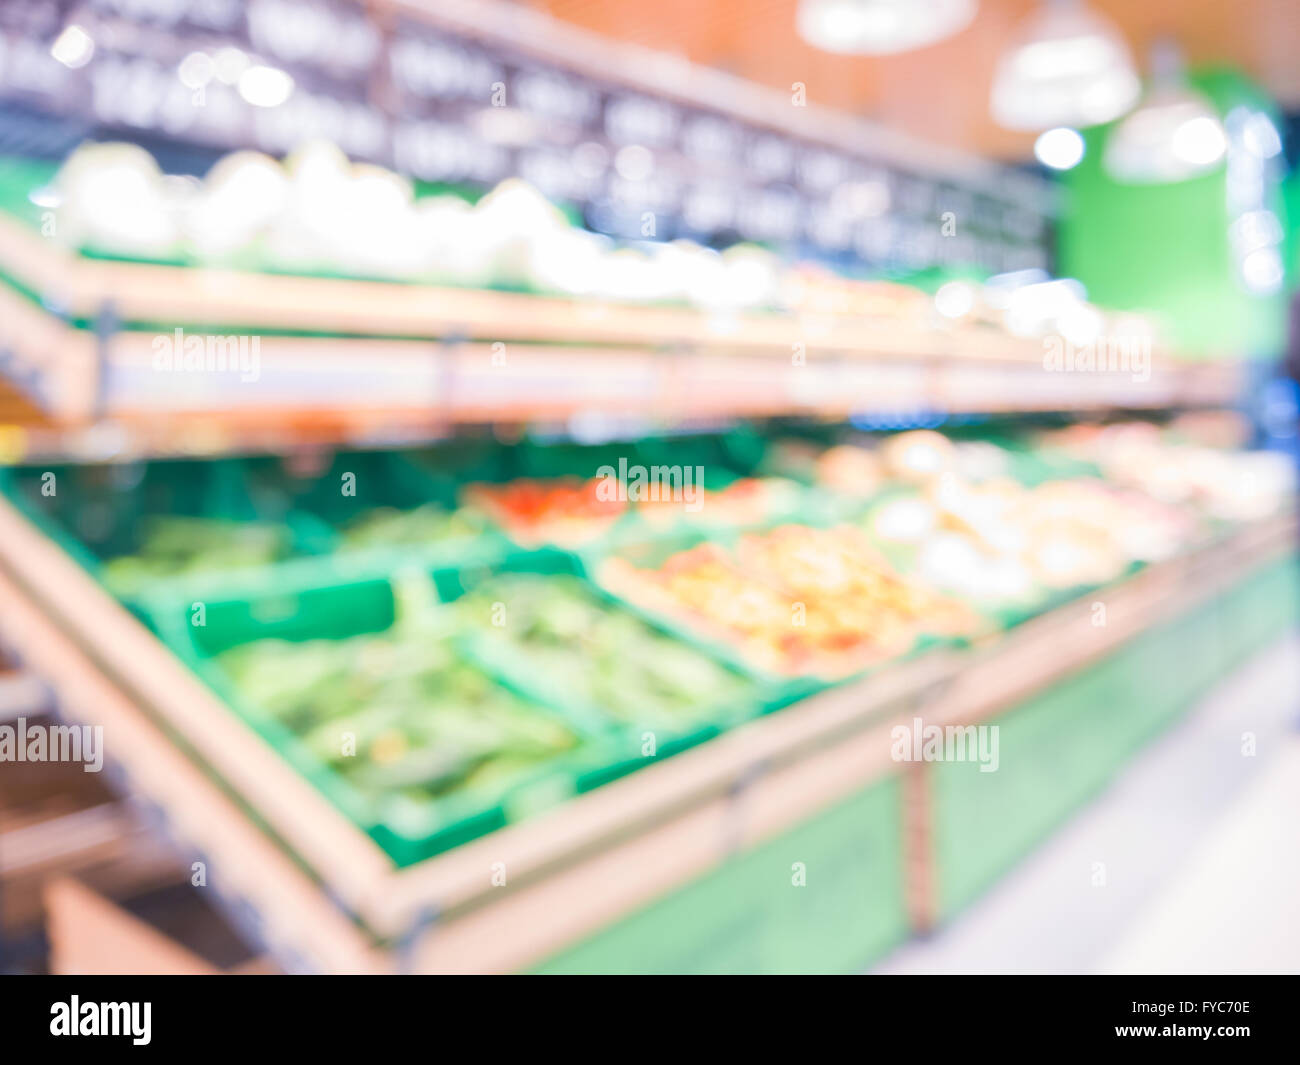 Blur of fresh fruits on shelf in supermarket. Shalow DOF. For healthy concept - Stock Image